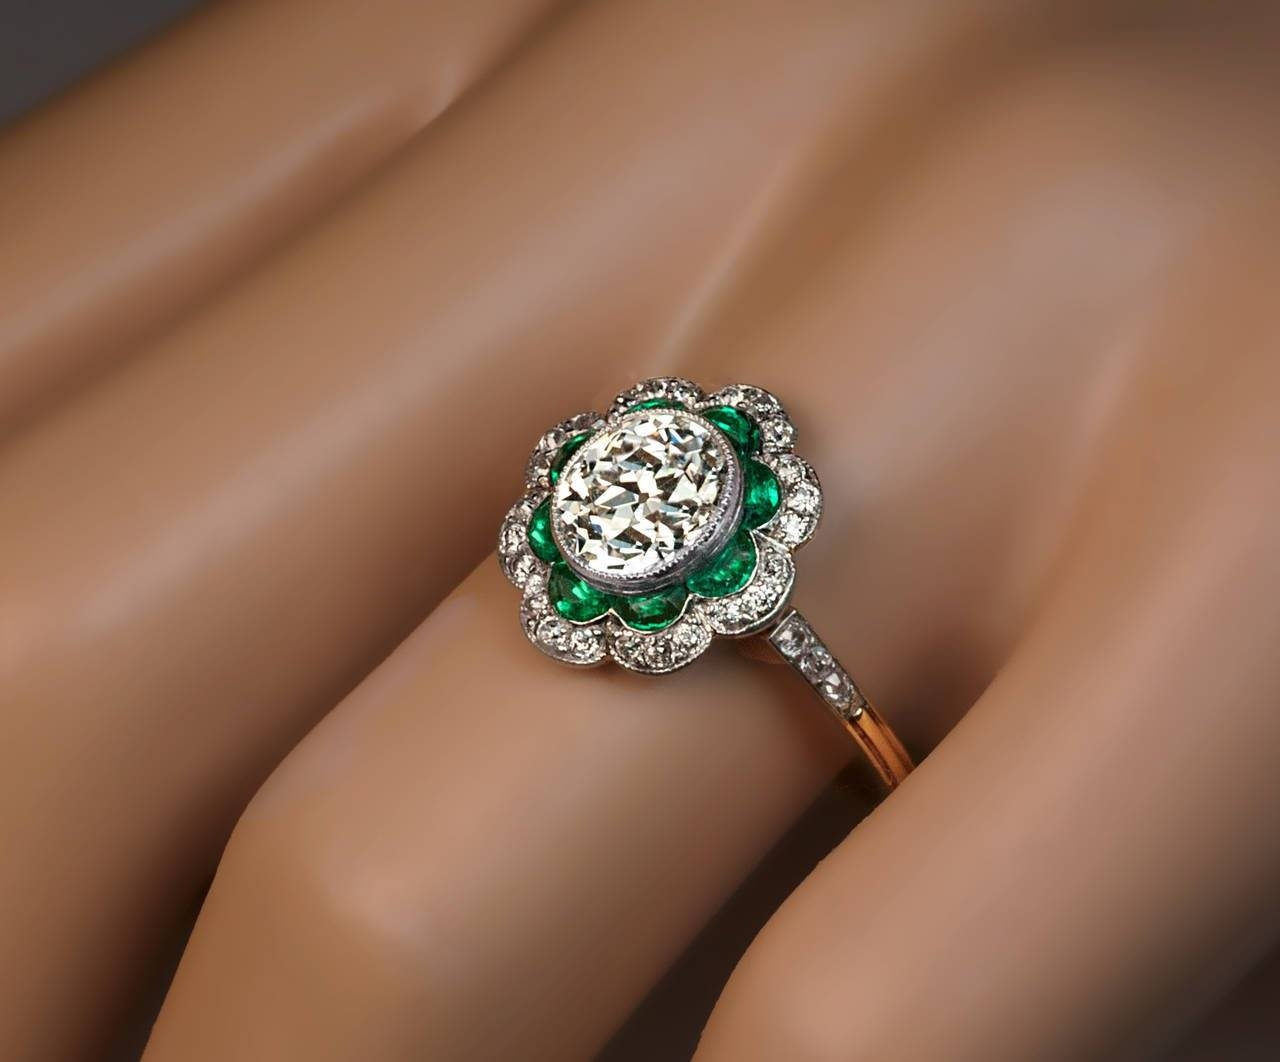 1920S Art Deco Emerald Diamond Platinum Engagement Ring At 1Stdibs Within Emeralds Engagement Rings (View 1 of 15)